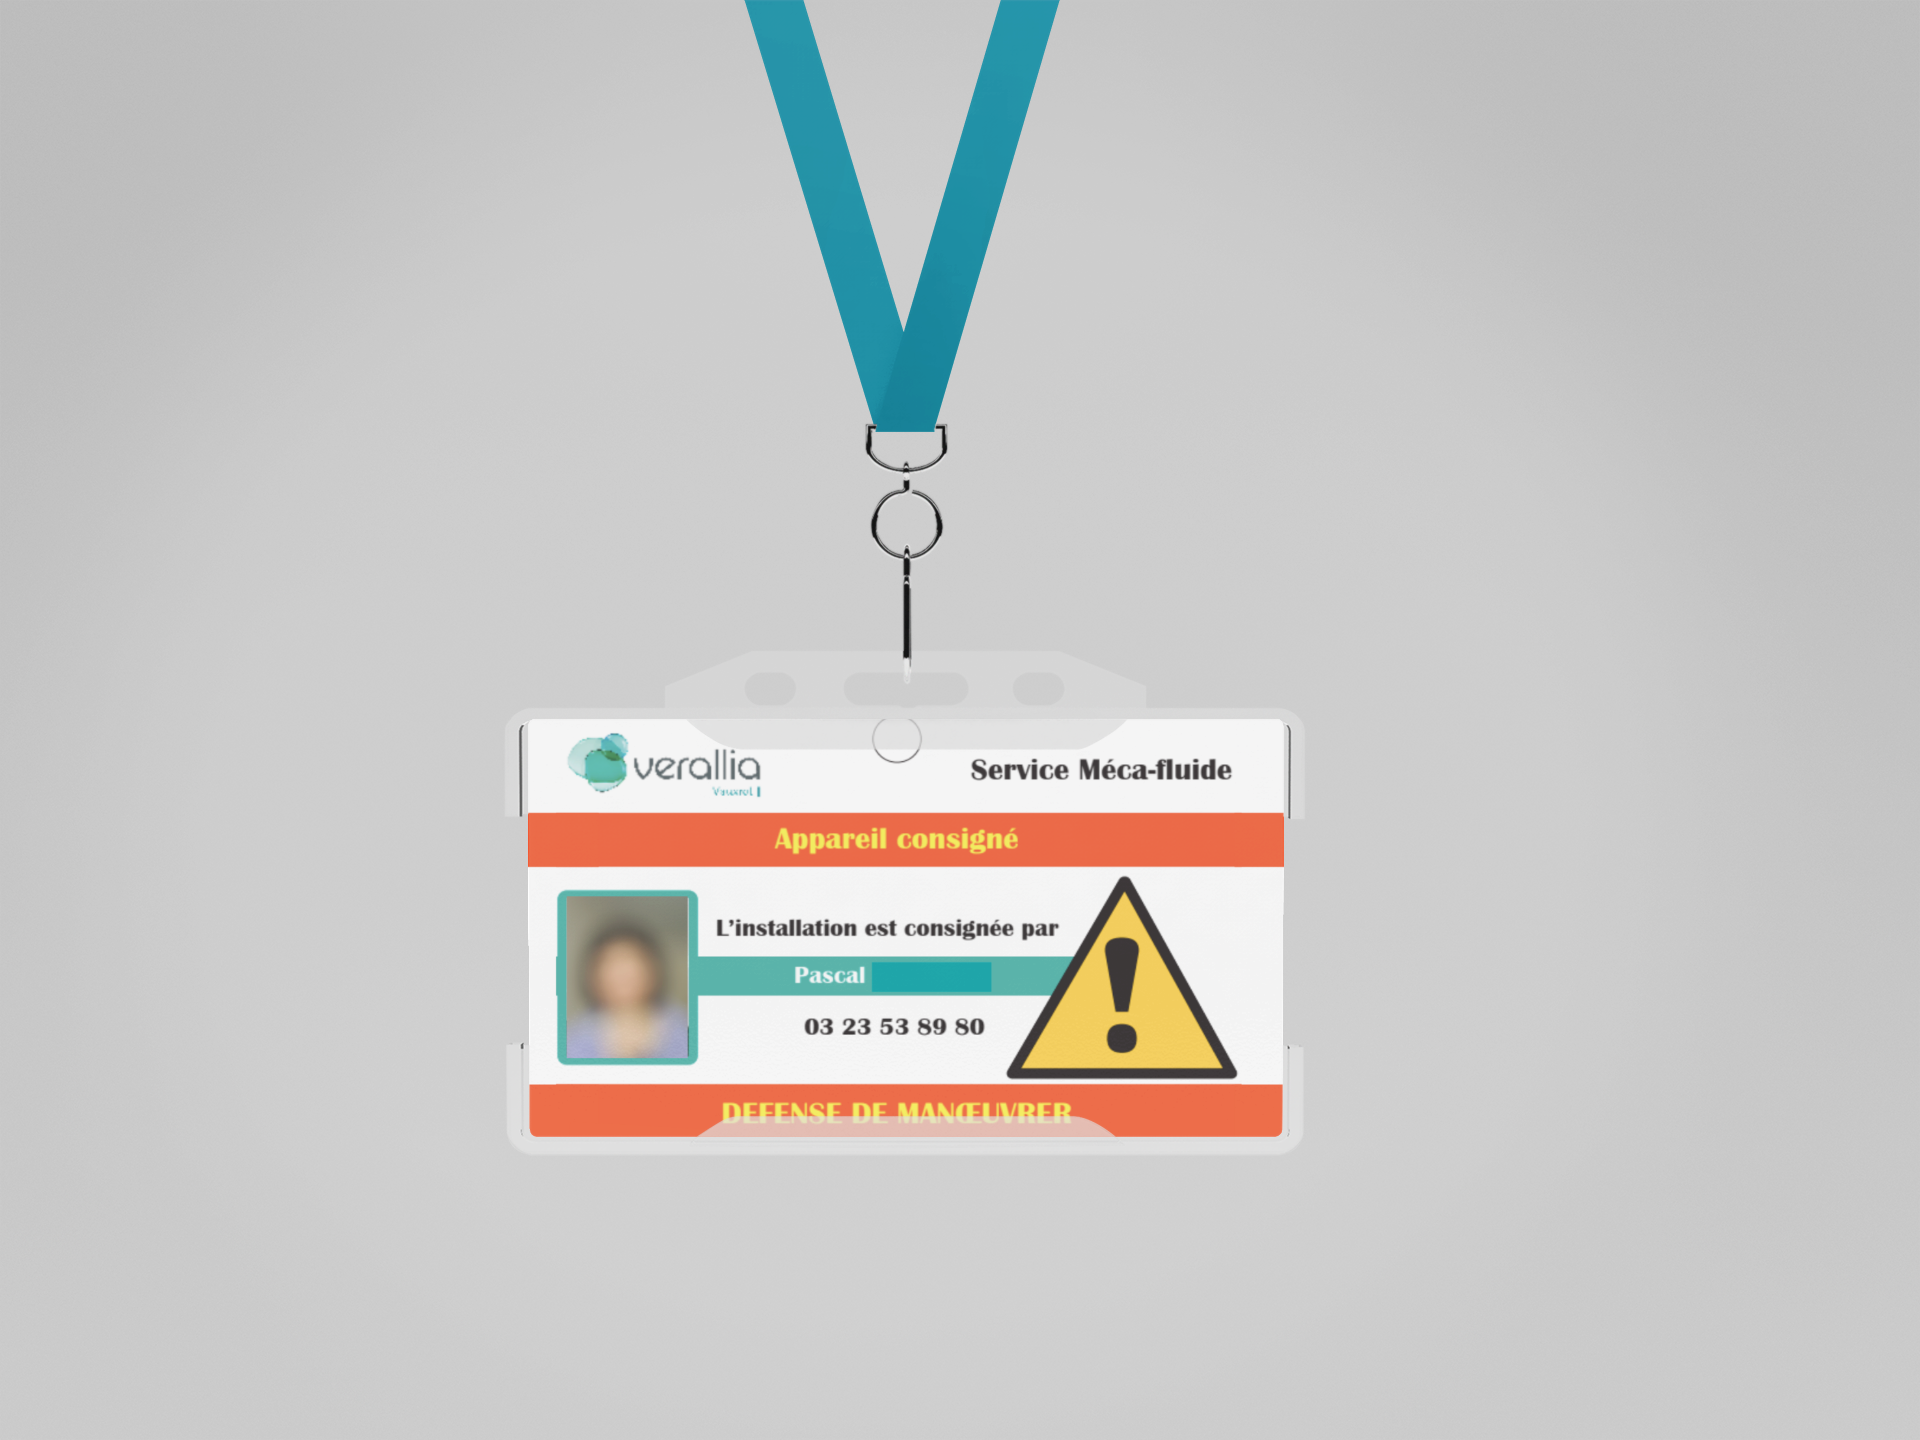 mockup-of-a-badge-holder-hangin-in-a-cus